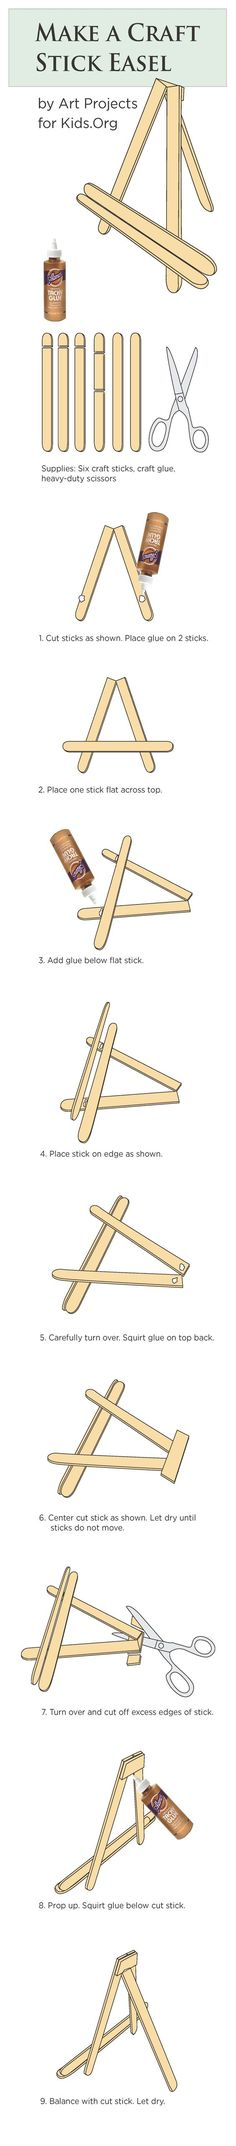 Craft Stick Easel Tutorial | Art Projects for Kids.Org